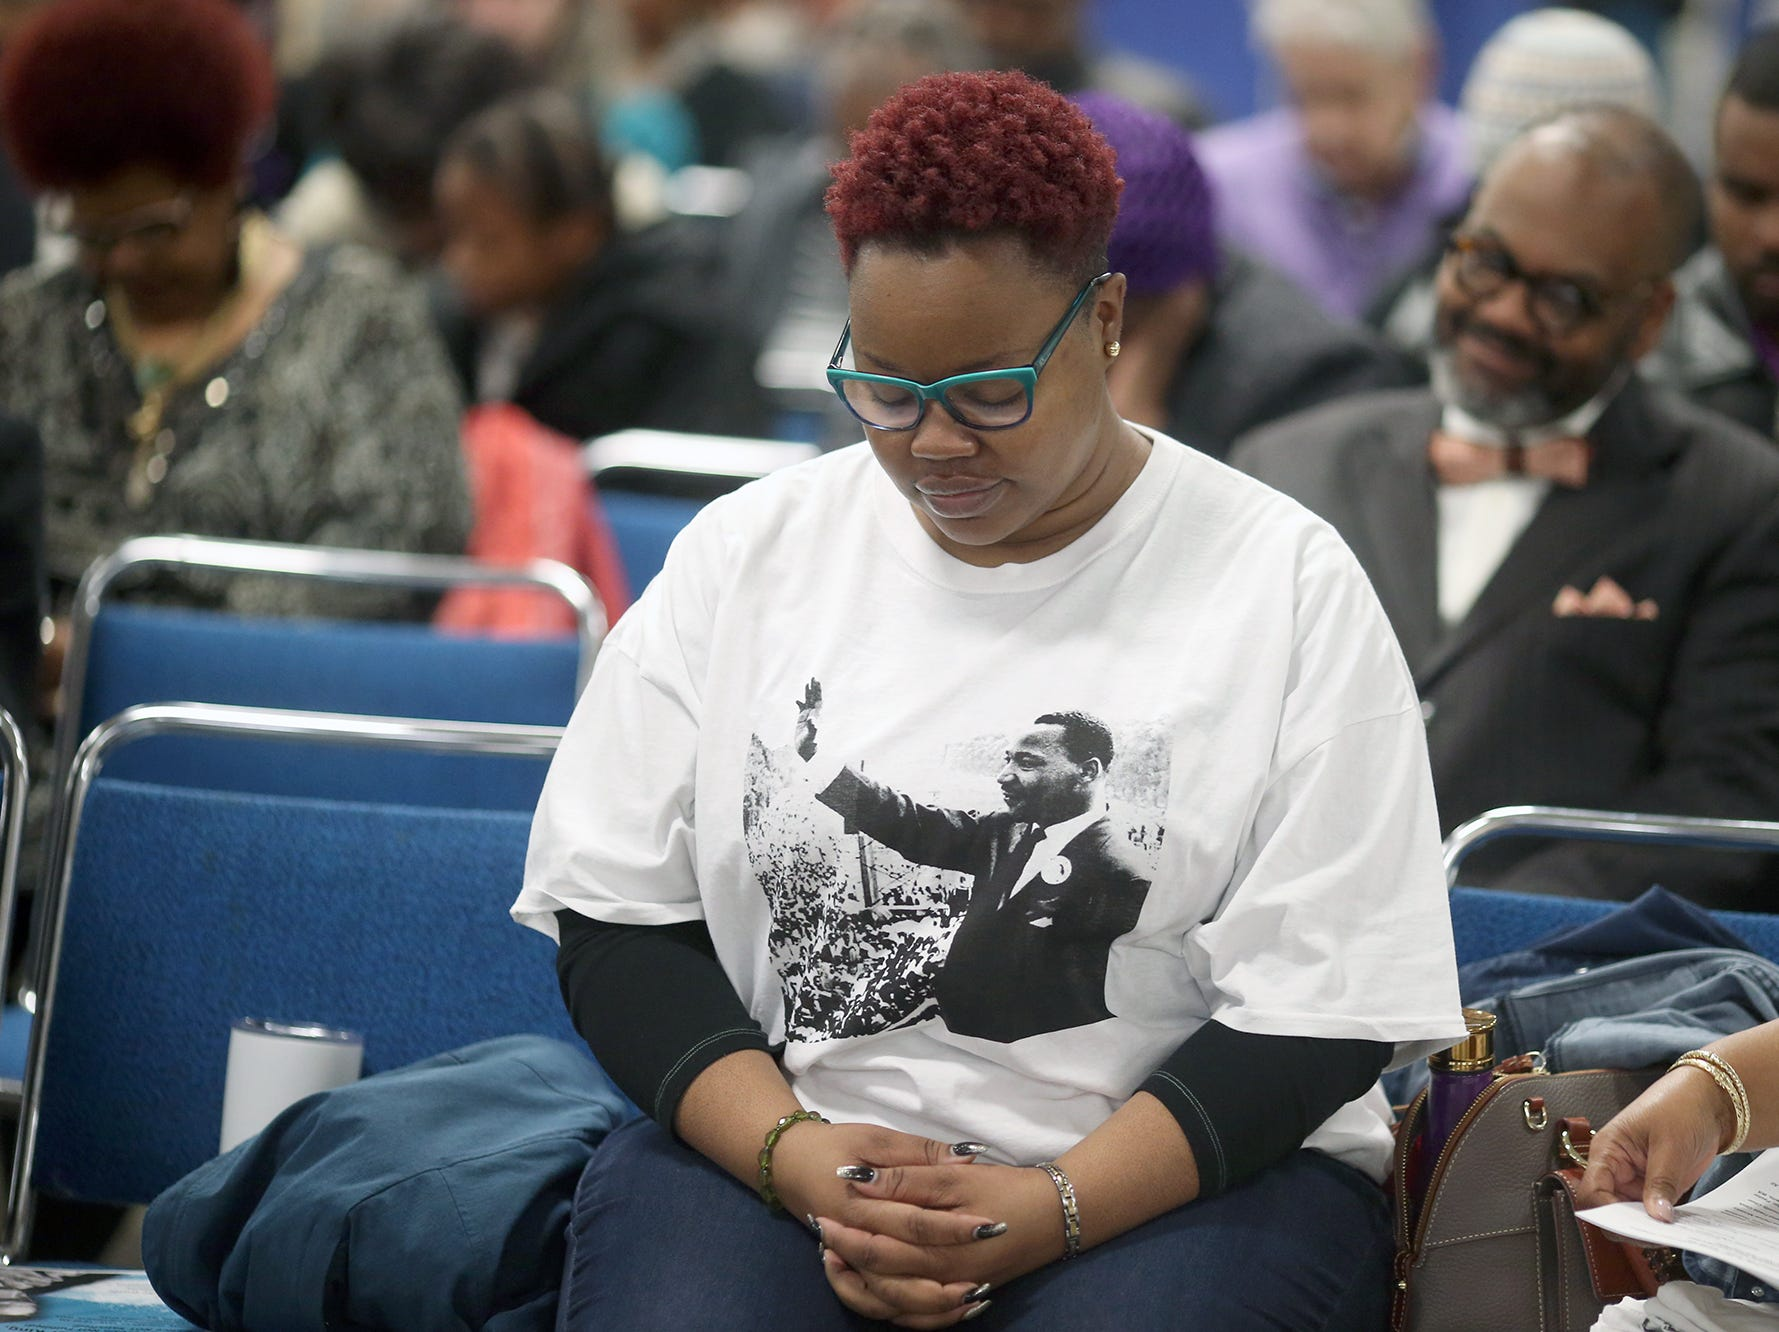 Candyce Chattman of Bremerton bows for prayer  at the 25th annual Reverend Dr. Martin Luther King, Jr. celebration was held at PresidentsÕ Hall at the Kitsap County Fairgrounds on Monday, January, 21 , 2019.